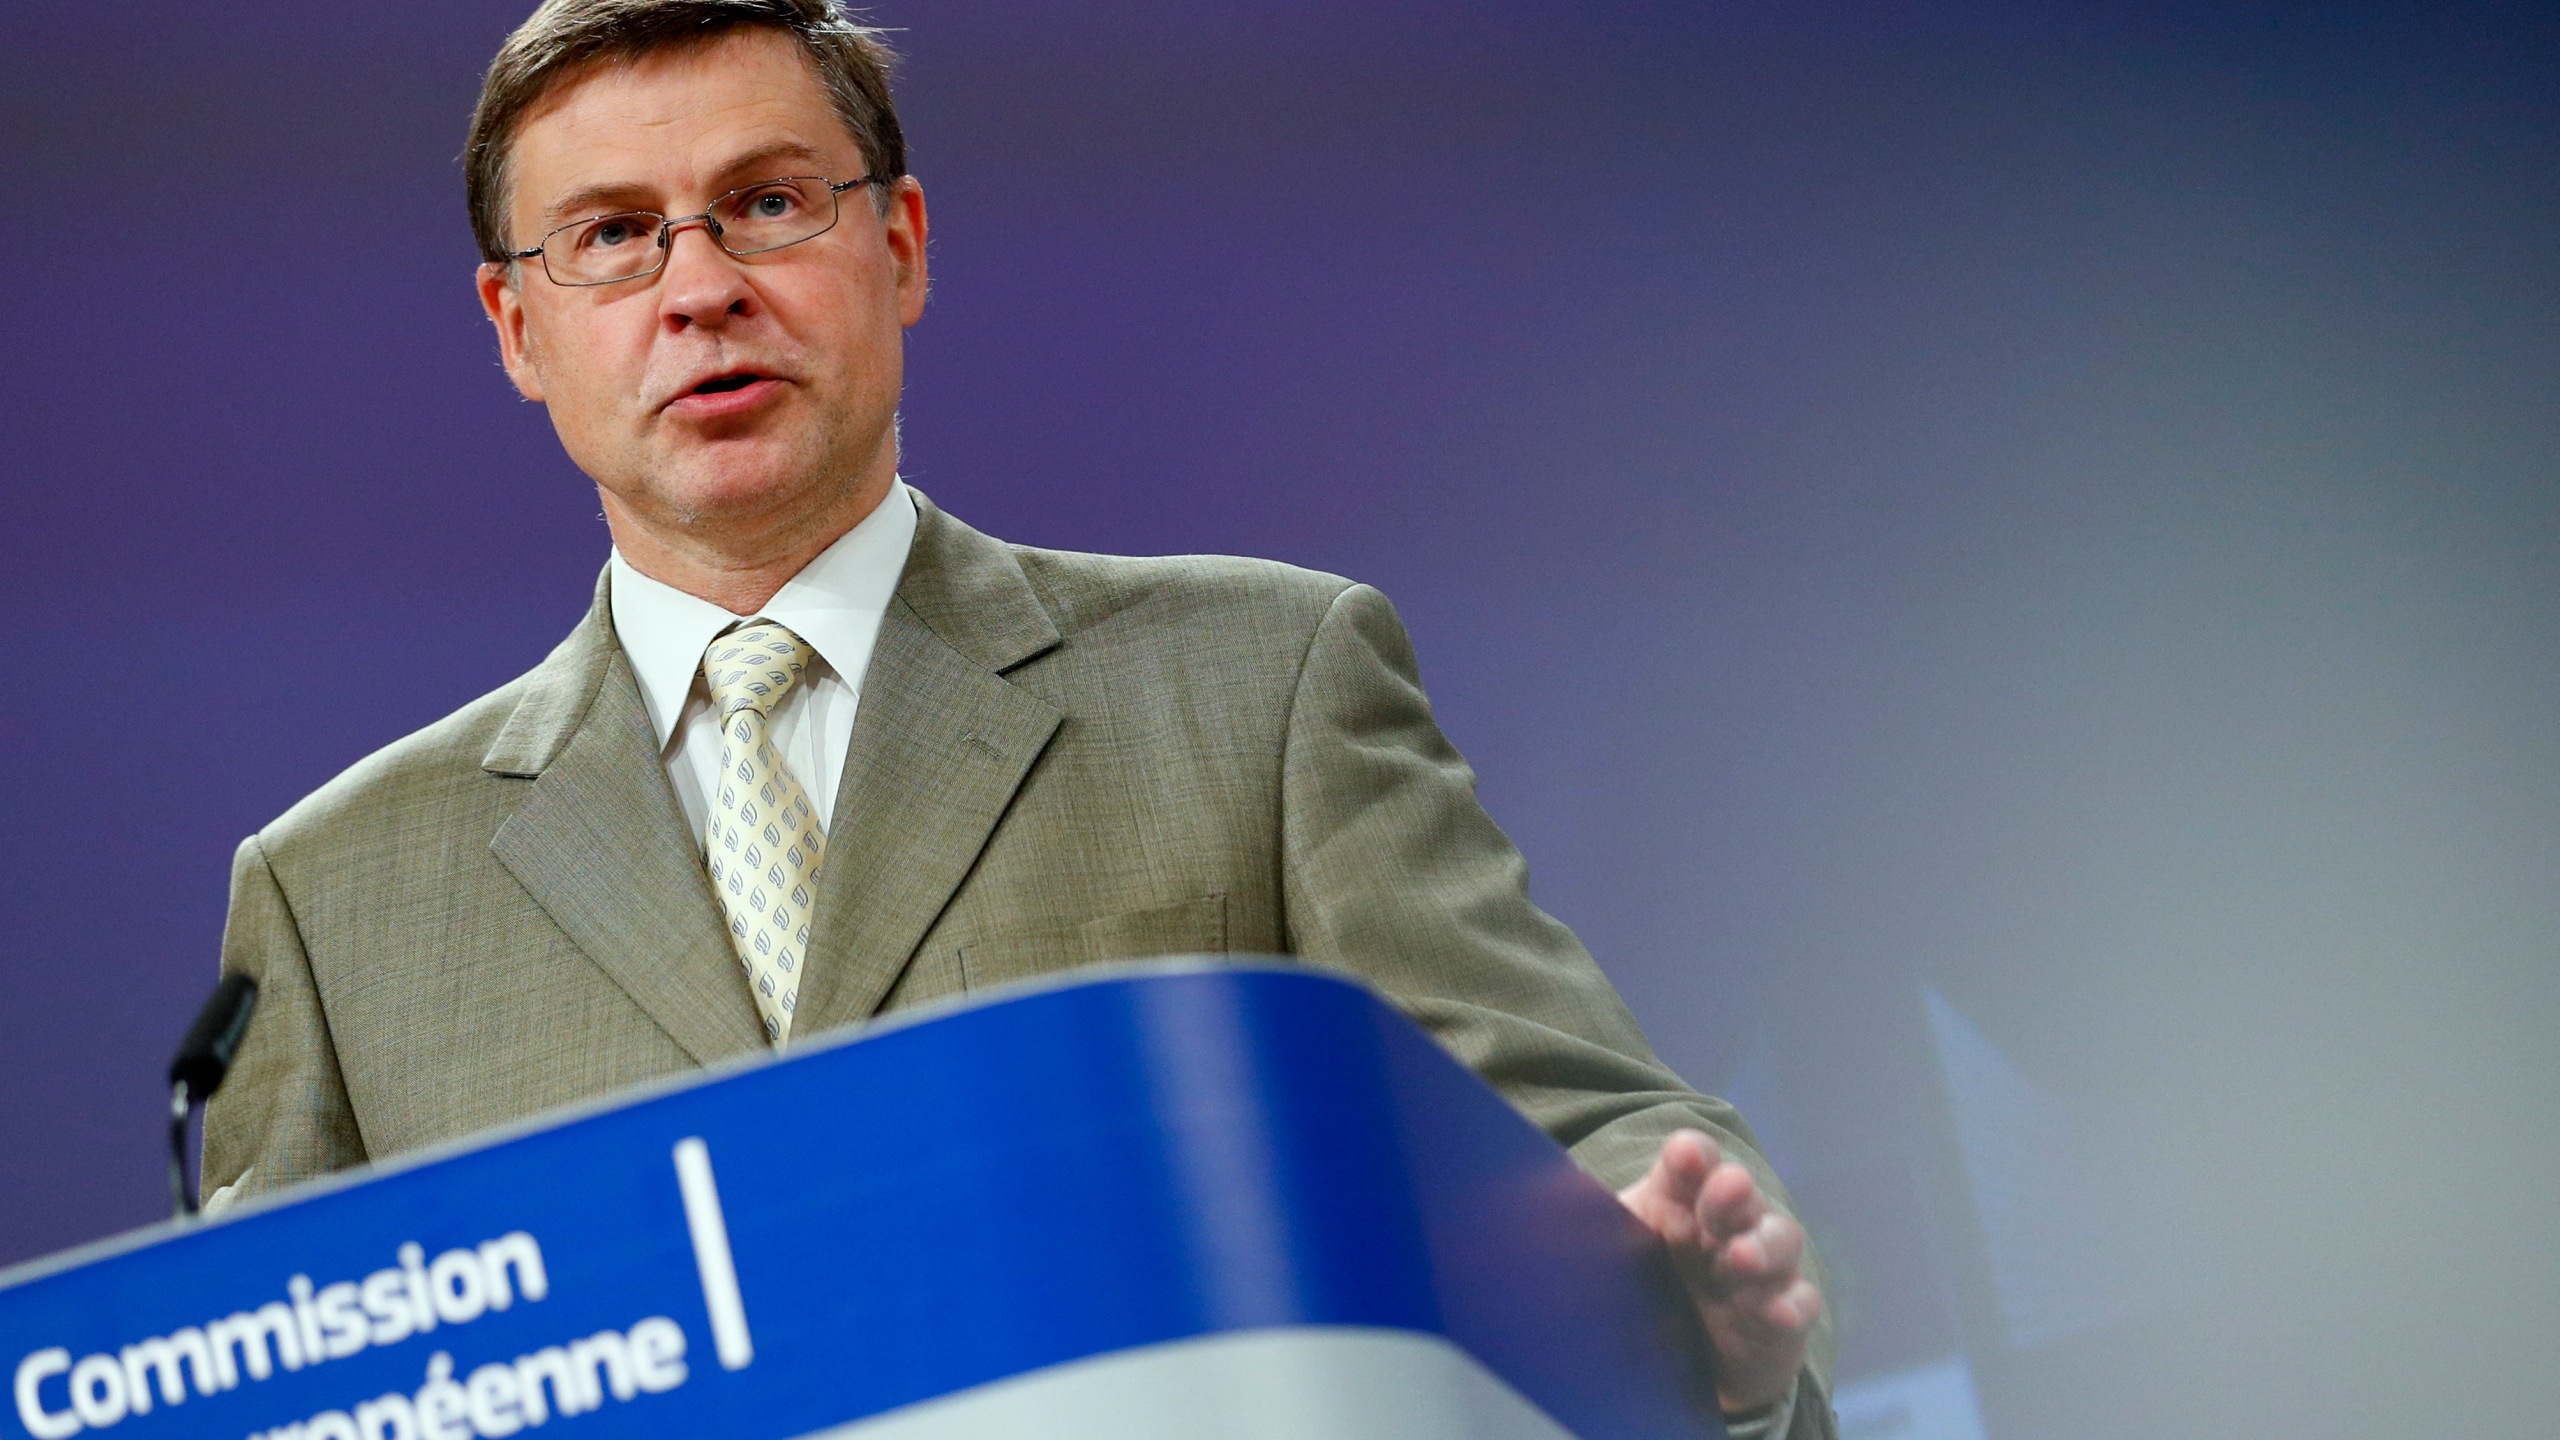 EU Commission news conference on European Semester Spring Package in Brussels